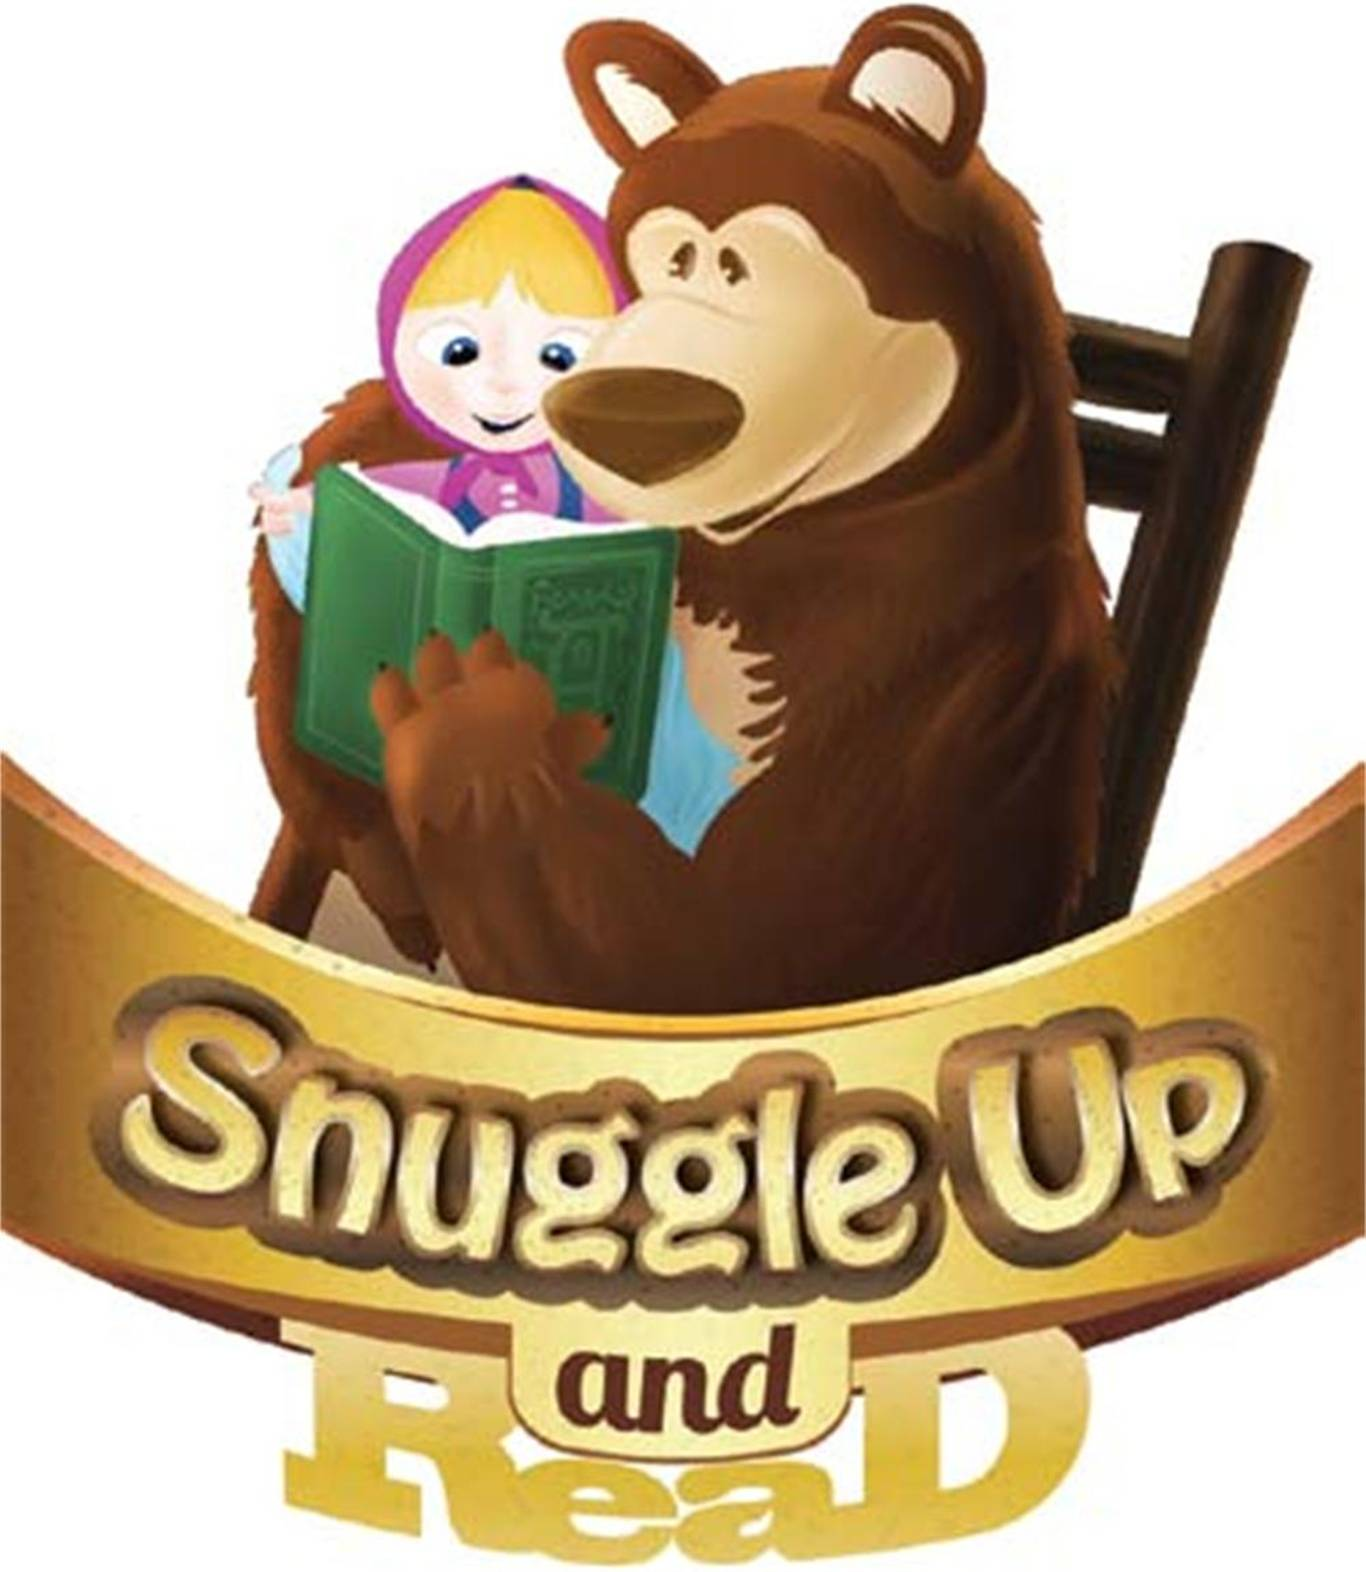 Snuggle up to a good book clipart image transparent Snuggle Clipart (99+ images in Collection) Page 1 image transparent